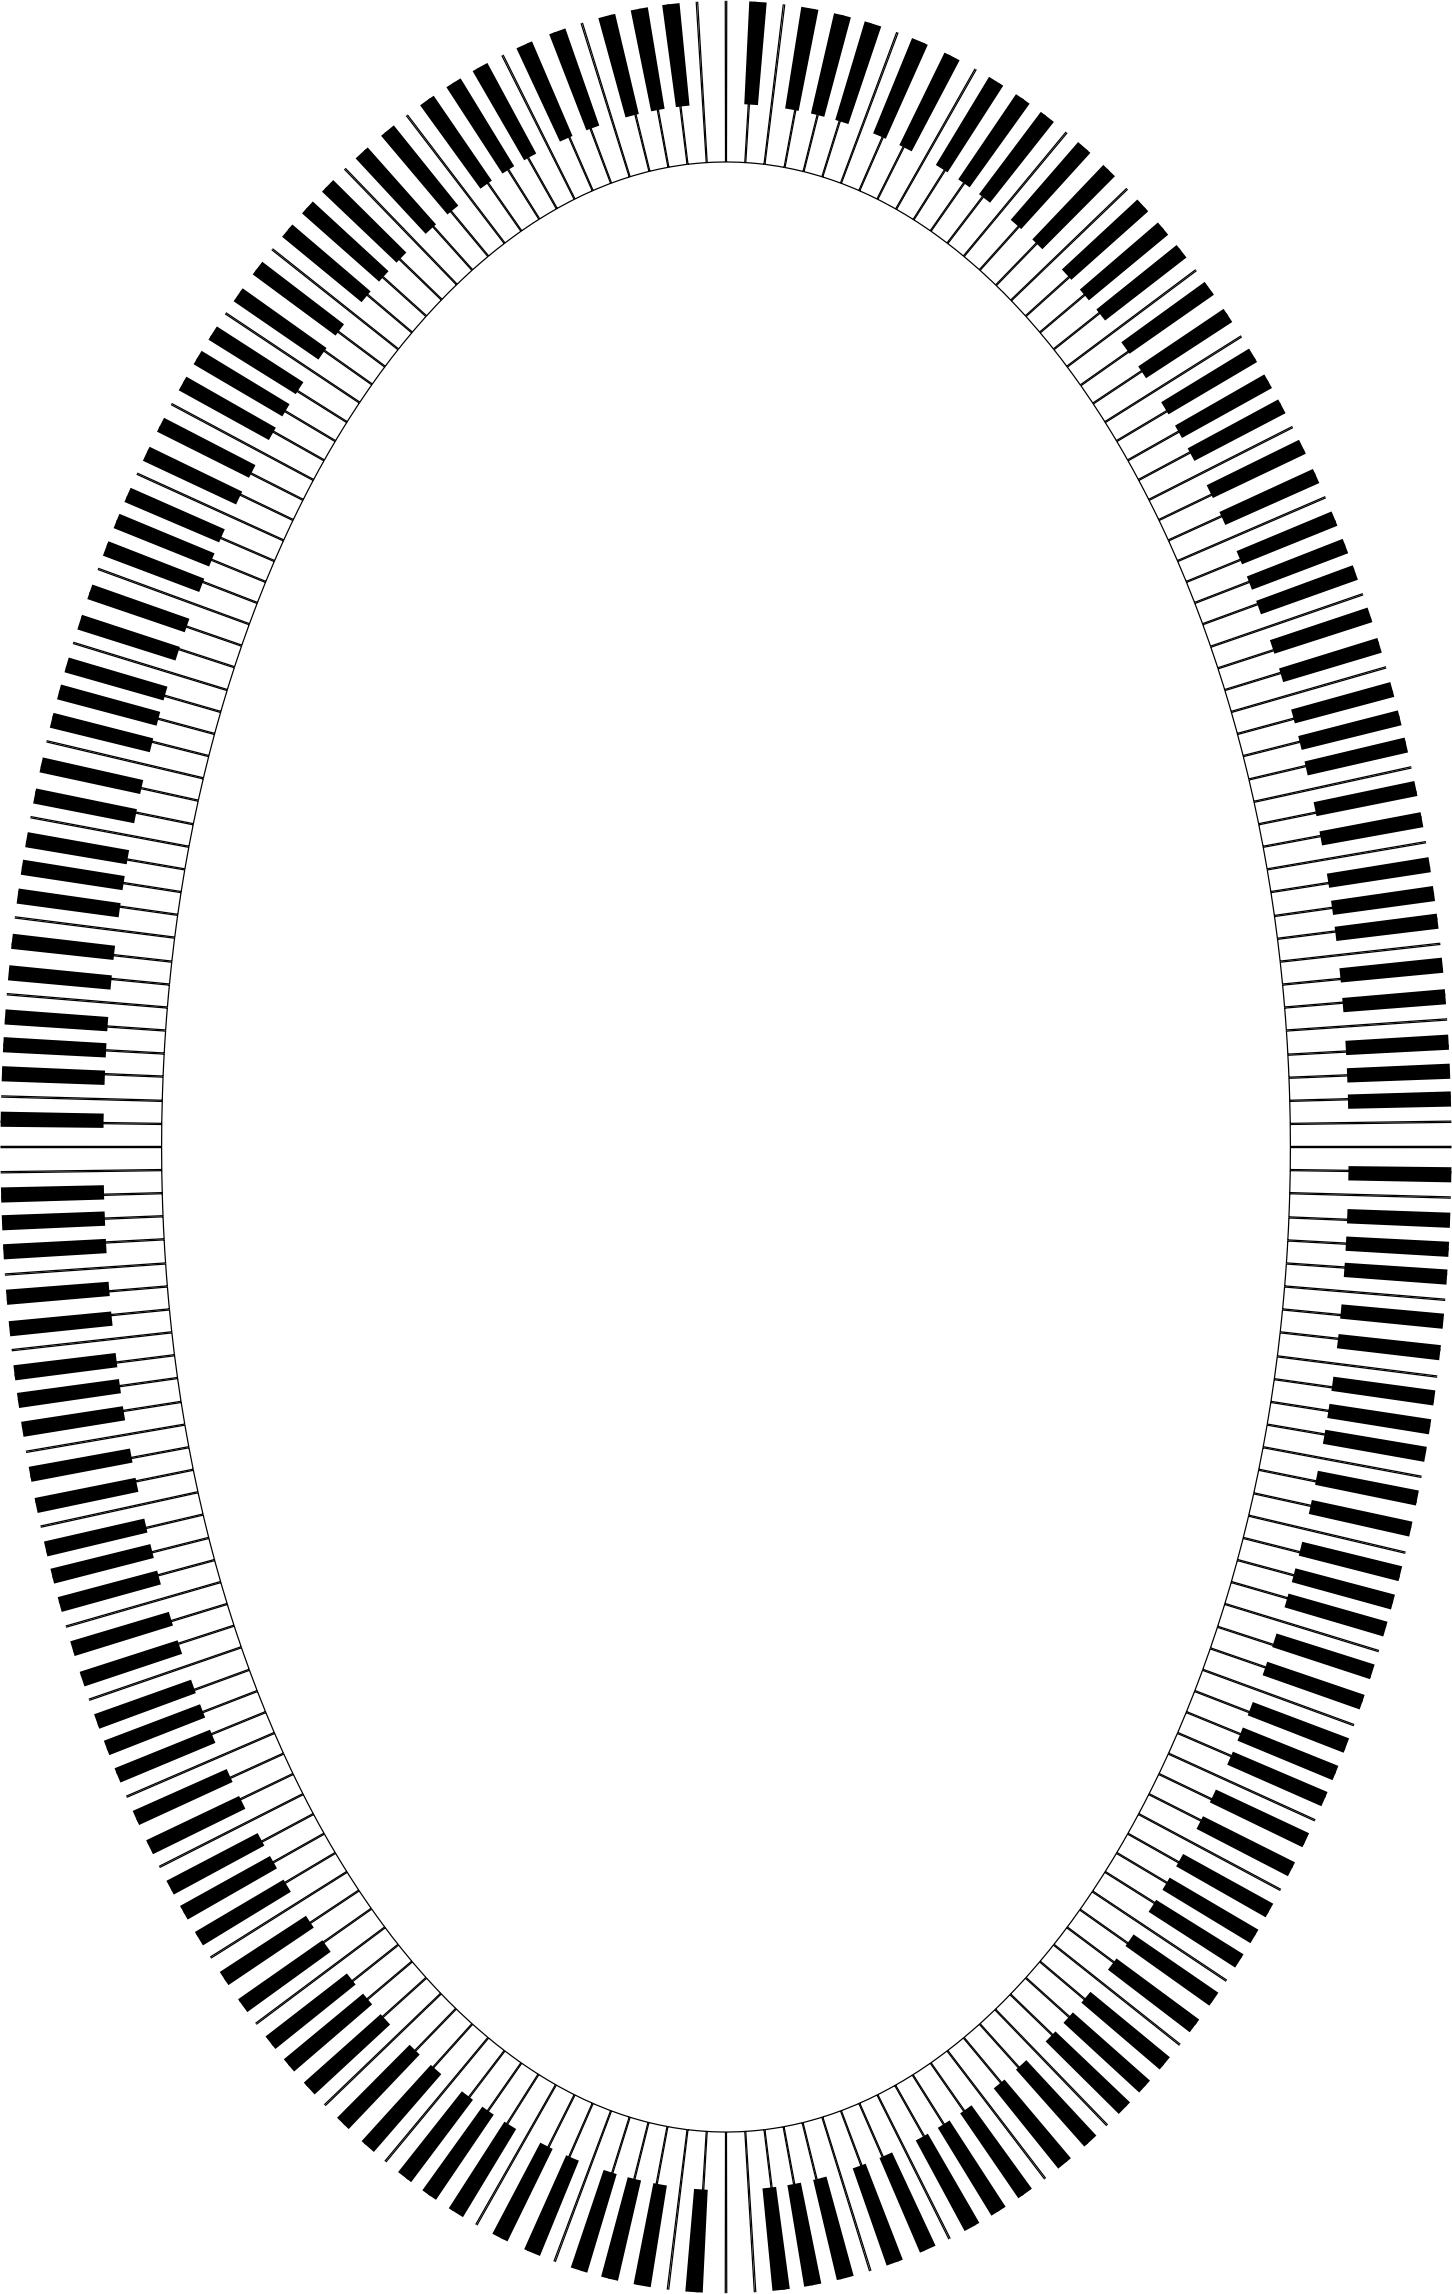 Piano Keys Ellipse by GDJ